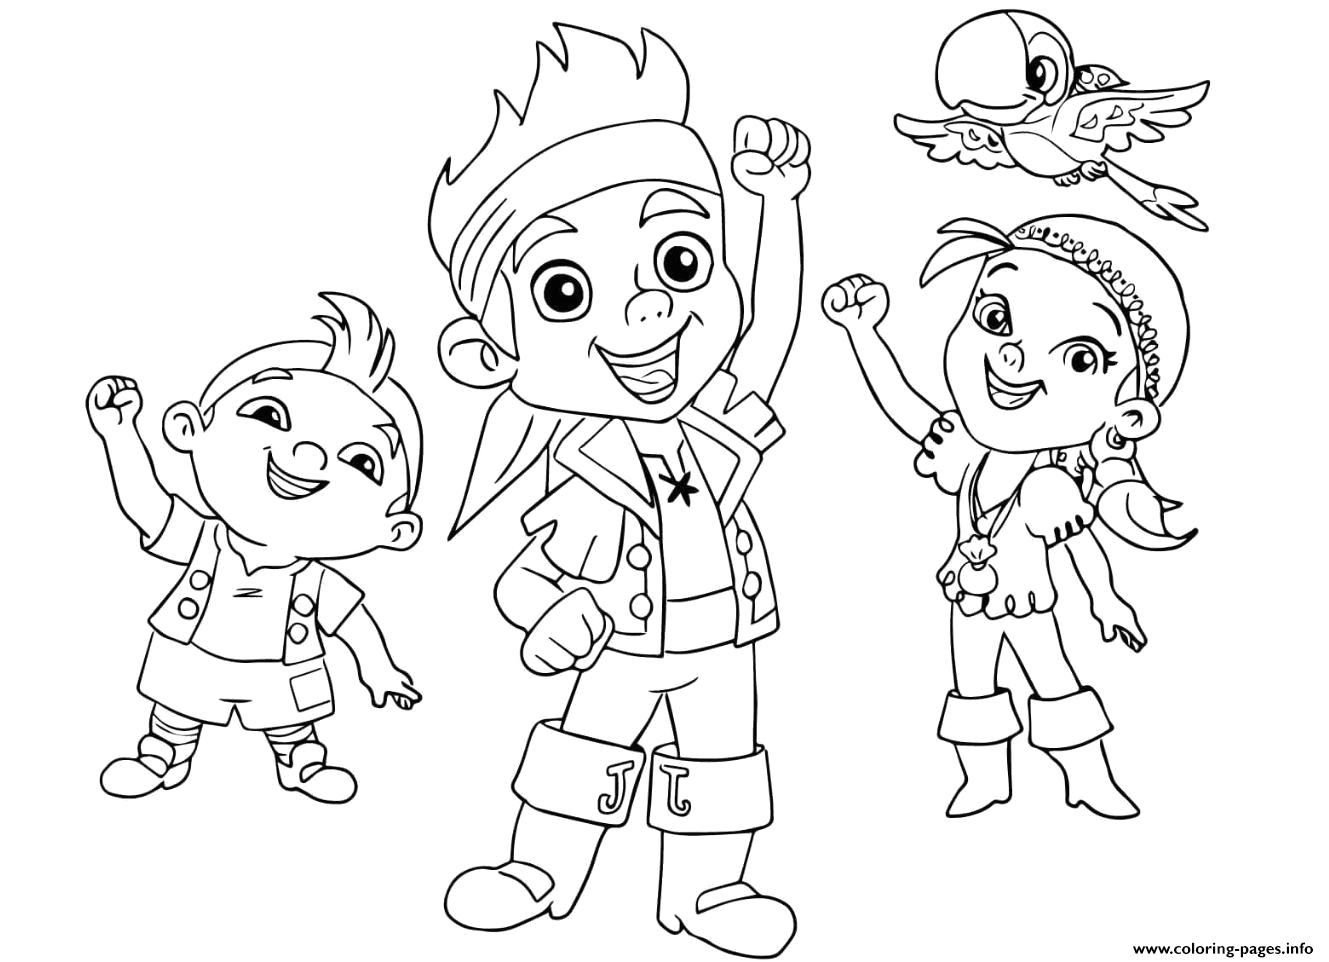 jake and the neverland pirates team halloween printable coloring pages book